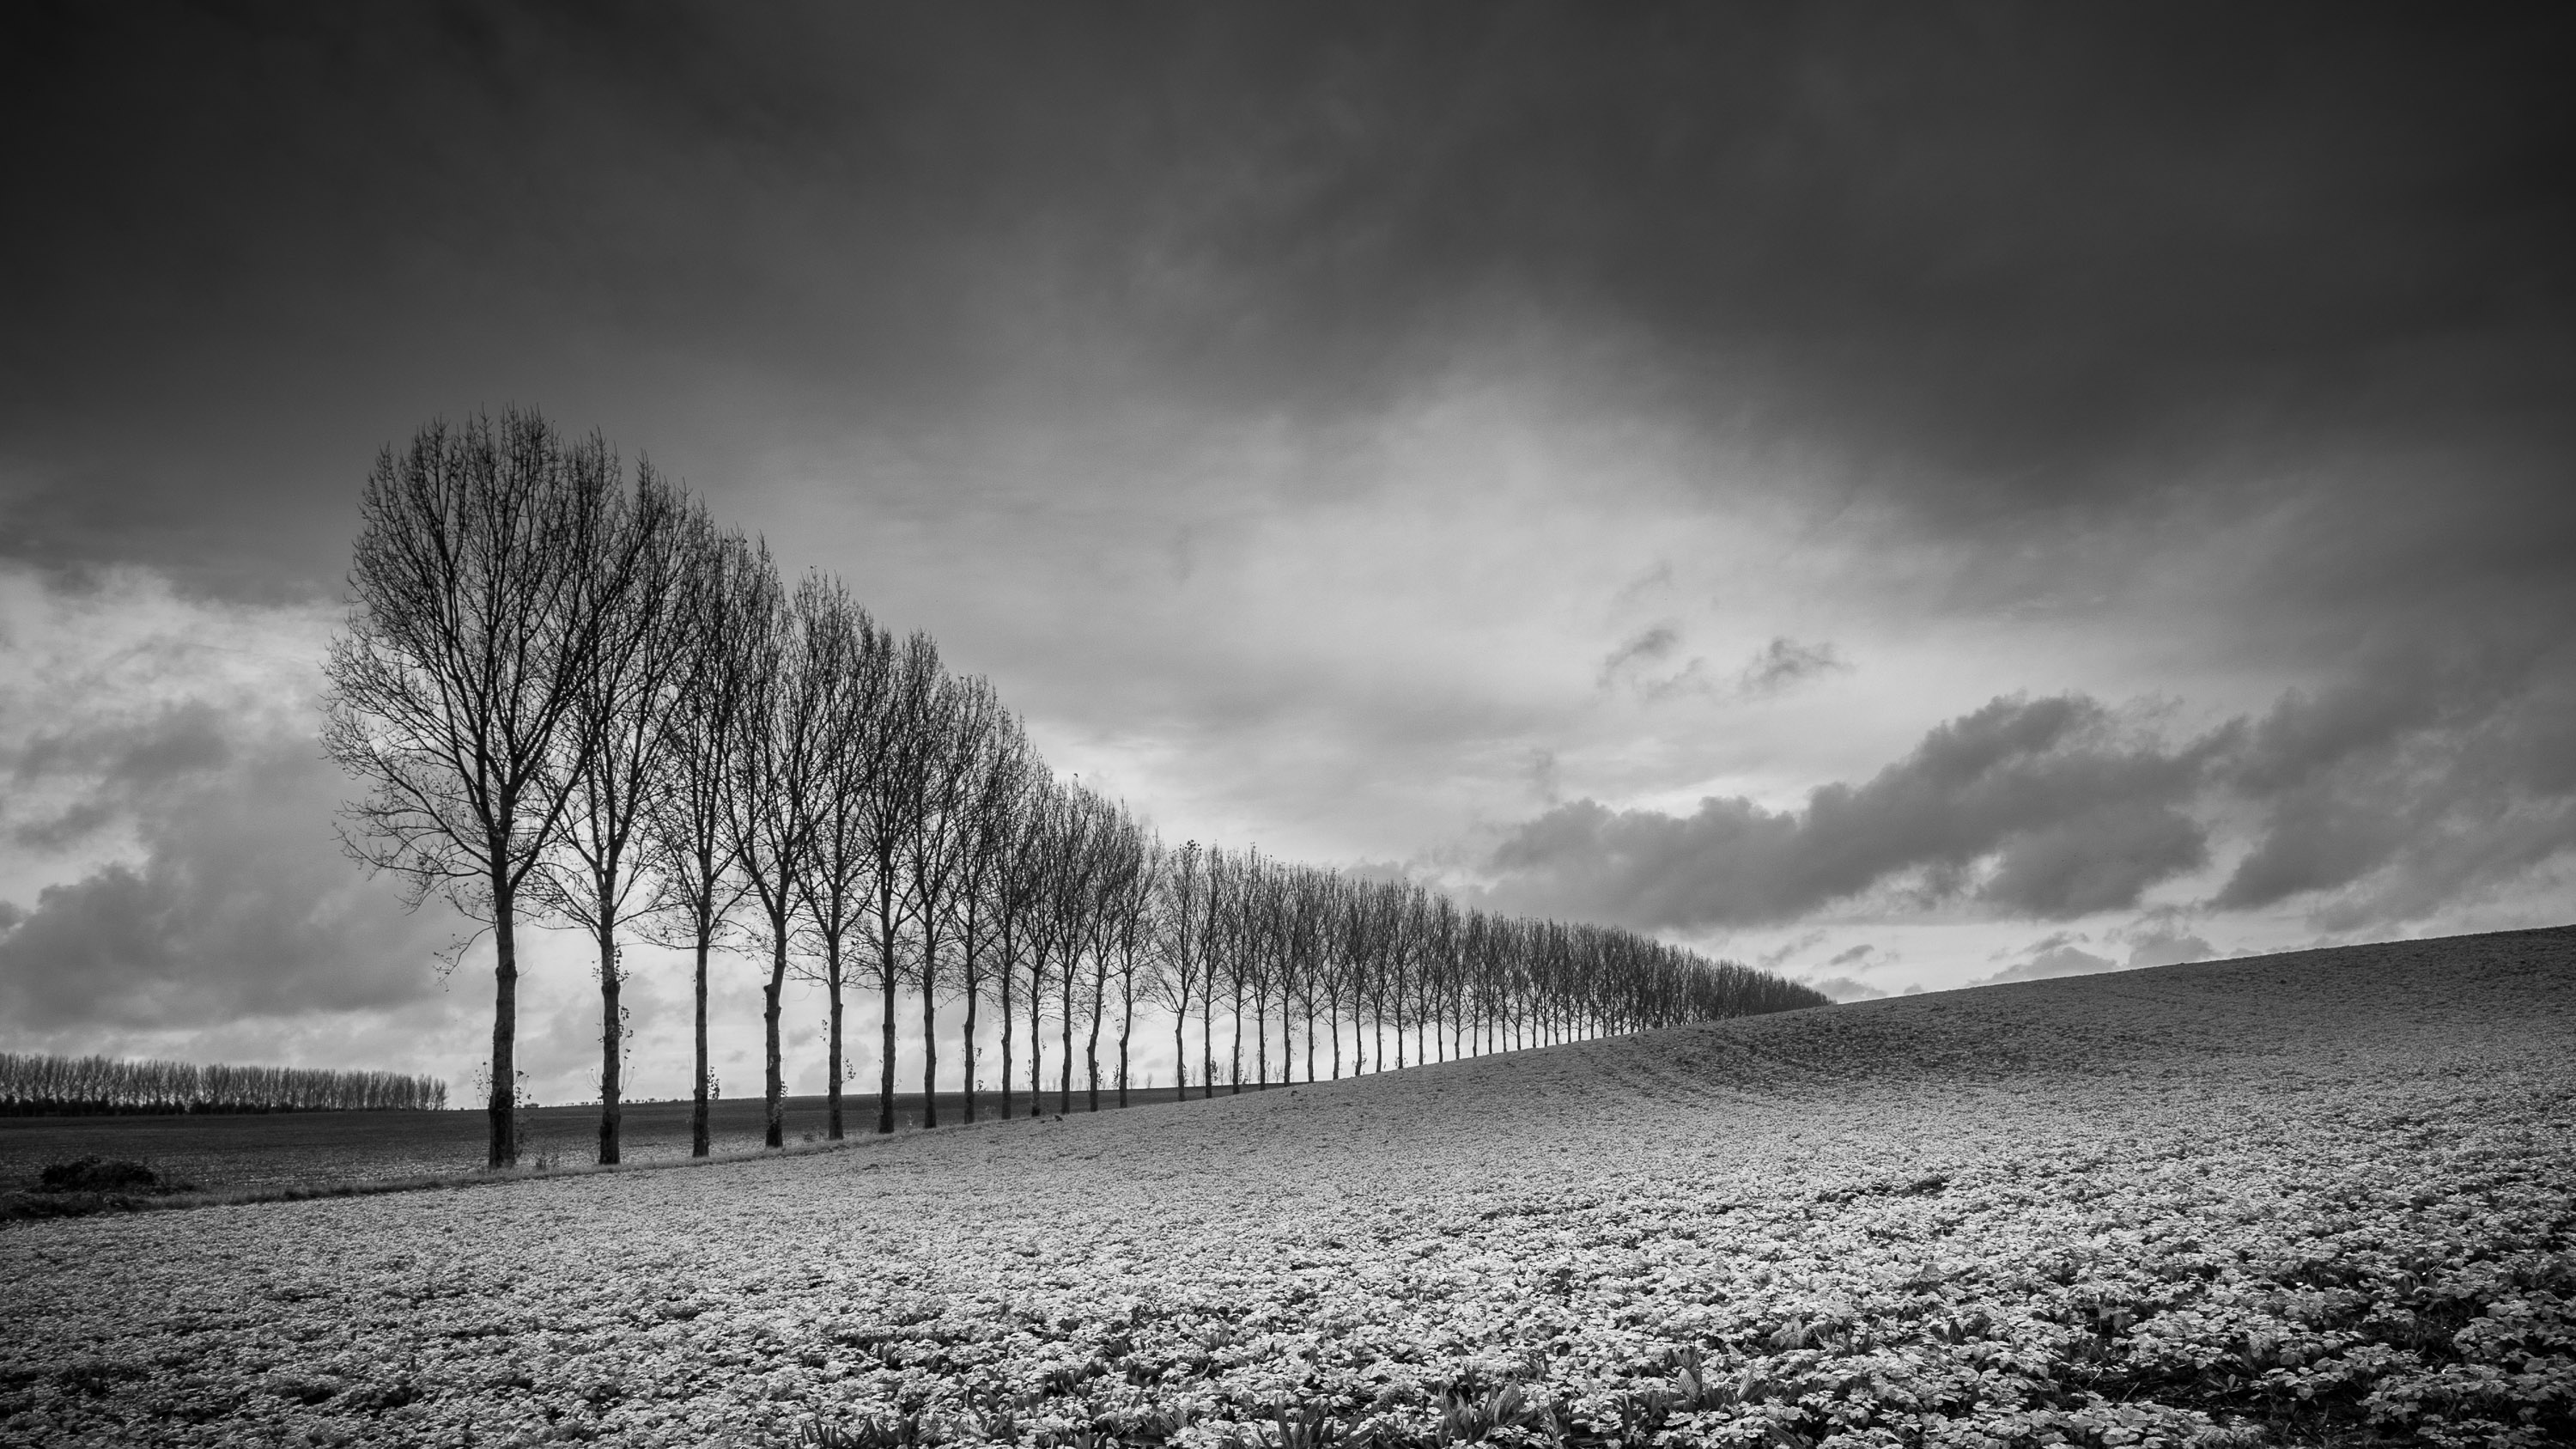 How to master black and white photography | TechRadar